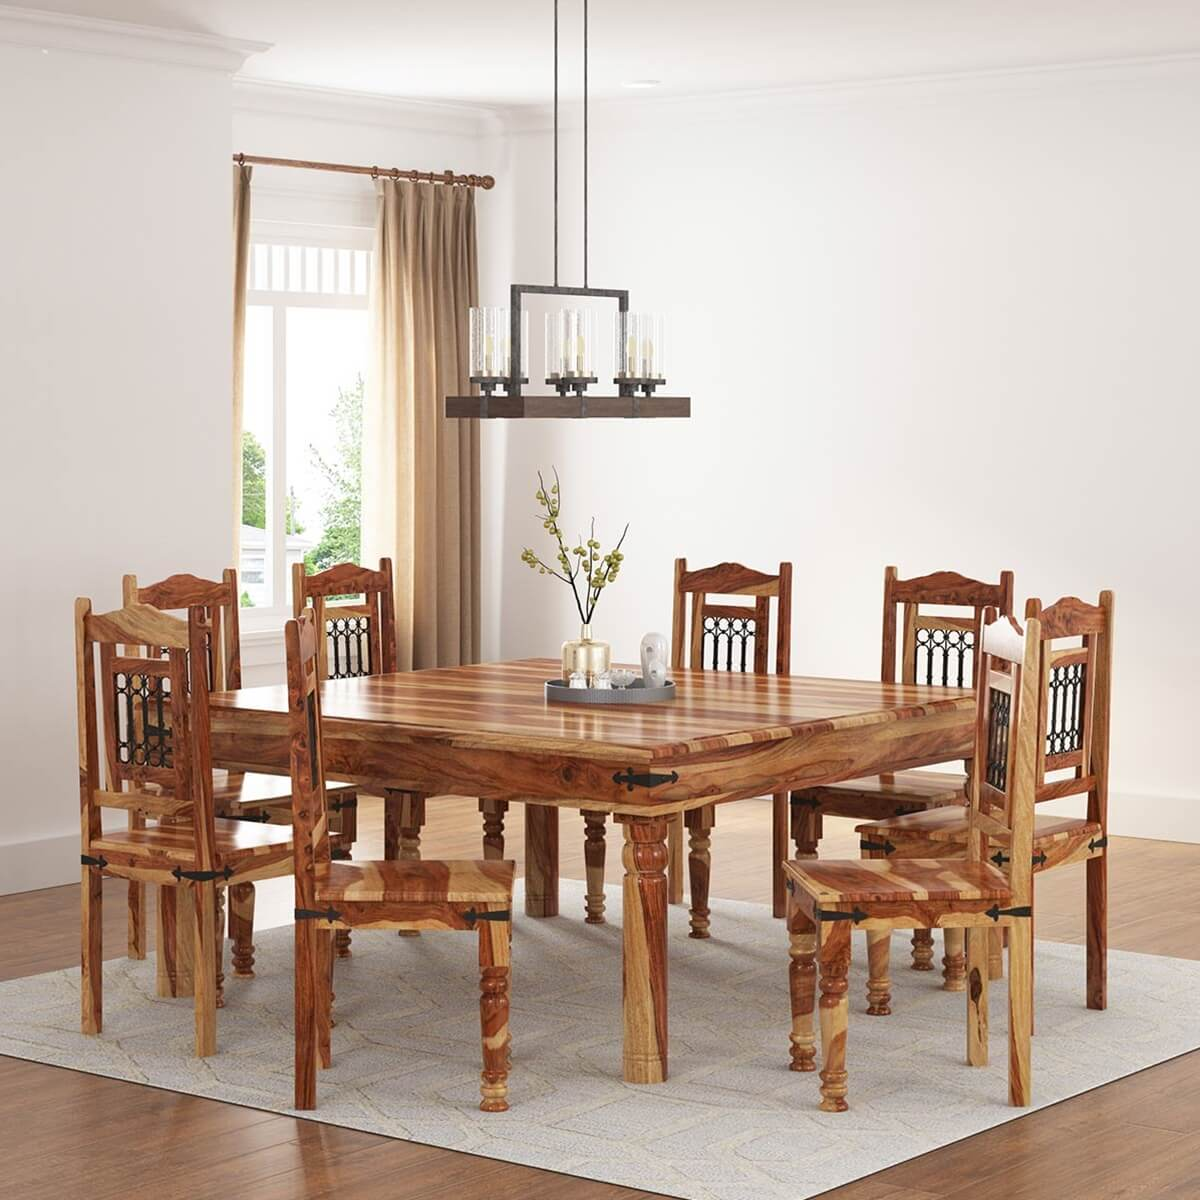 Peoria Solid Wood Large Square Dining Table   Chair Set For 8 People. Solid Wood Large Square Dining Table   Chair Set For 8 People